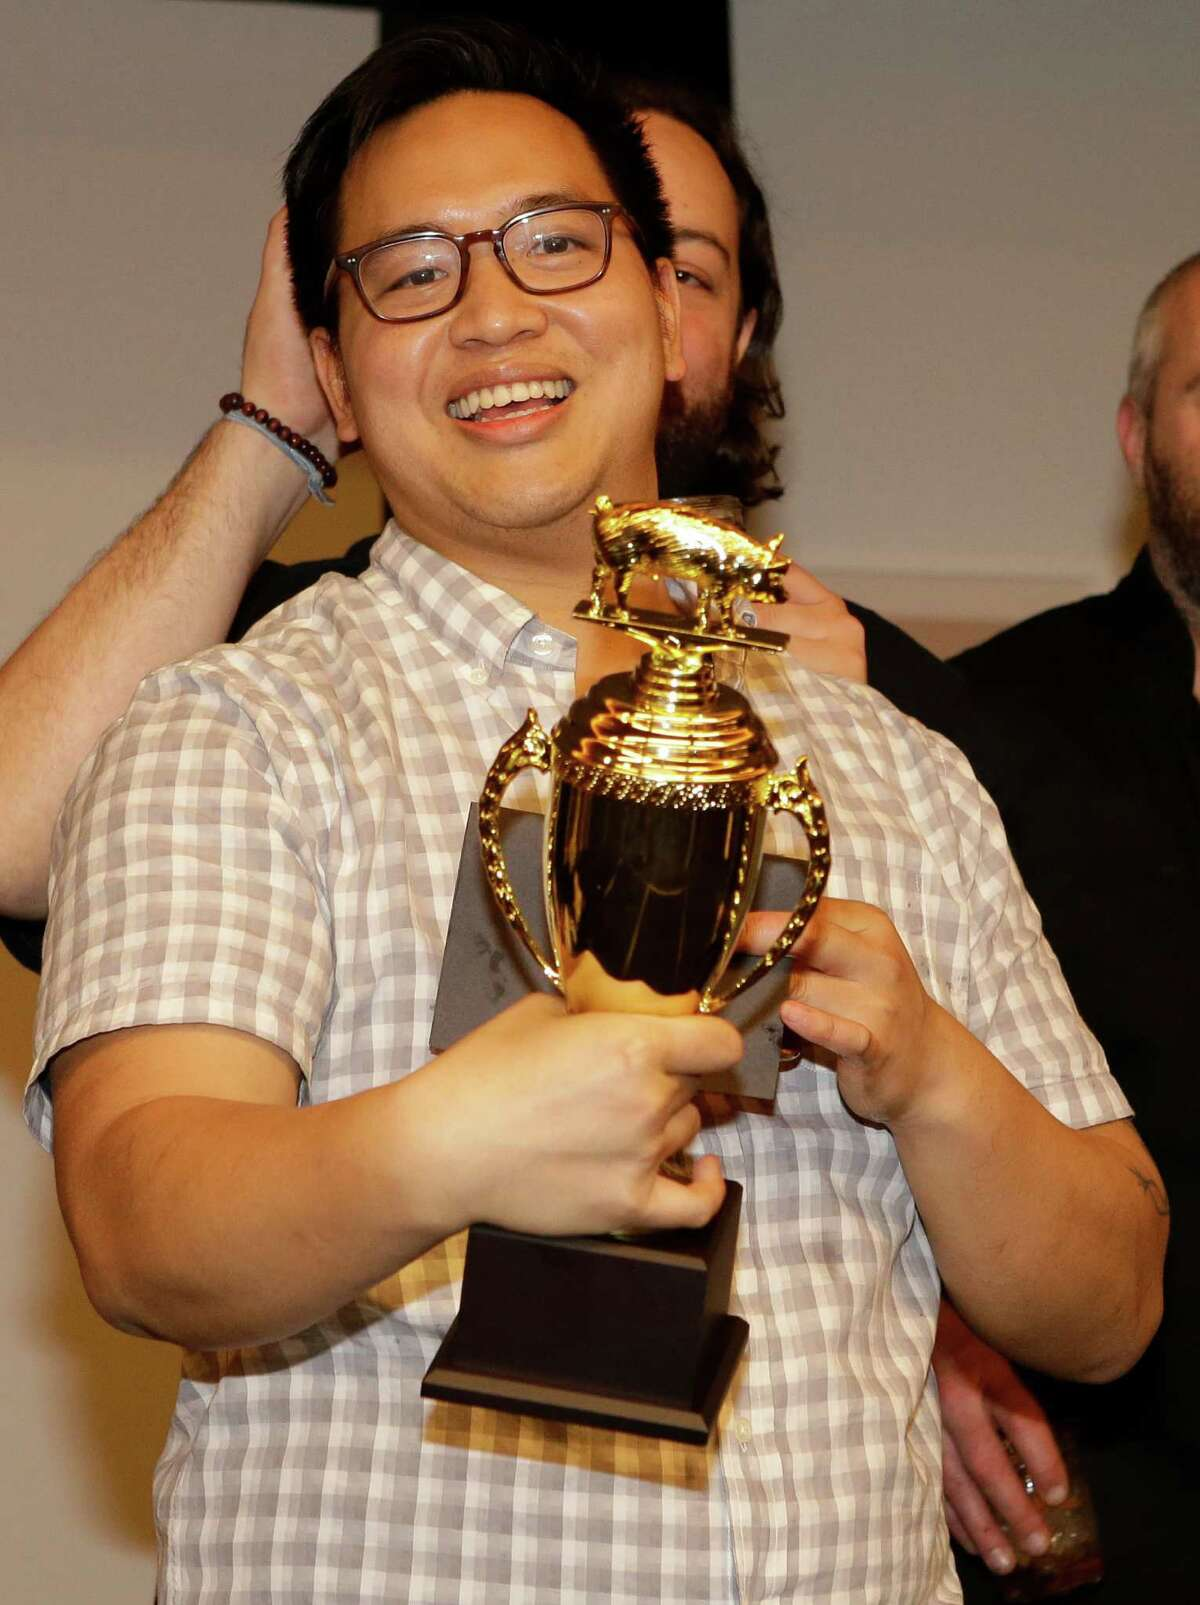 Chef Justin Yu of Oxheart holds his trophy at the Cochon555 event at the JW Marriott Houston Downtown, 806 Main St., Sunday, Feb. 28, 2016, in Houston.